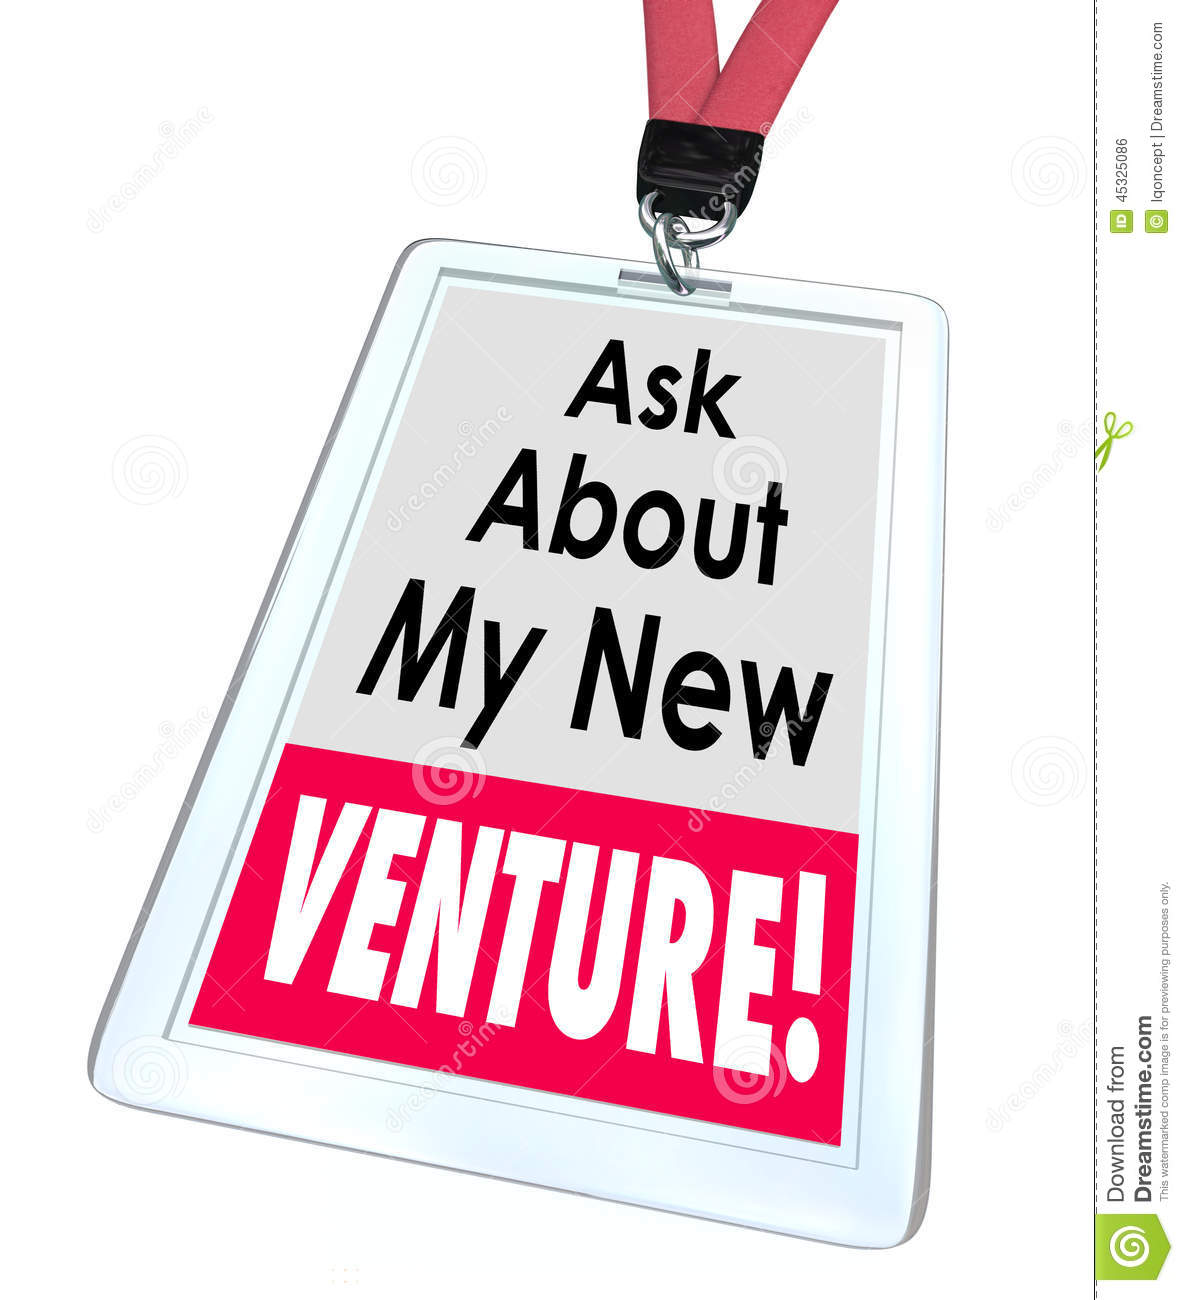 Ask About My New Venture words on a badge or name tag to illustrate a ...